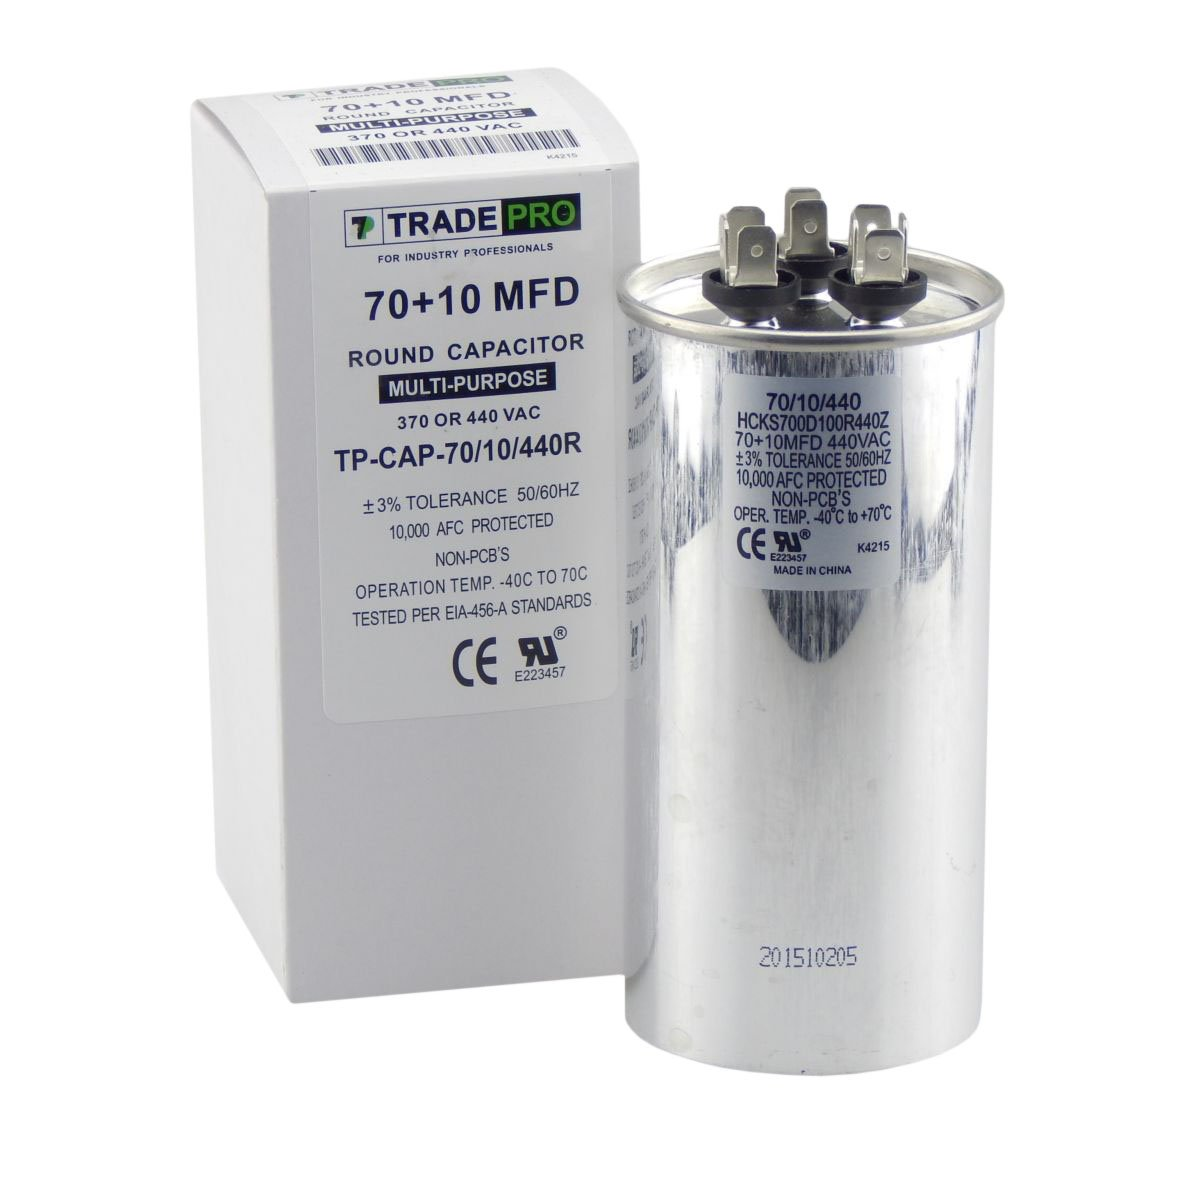 70/10 MFD Replaces Both 440 and 370 Volt Round Run Capacitors Dual Capacitor TradePro 70 + 10